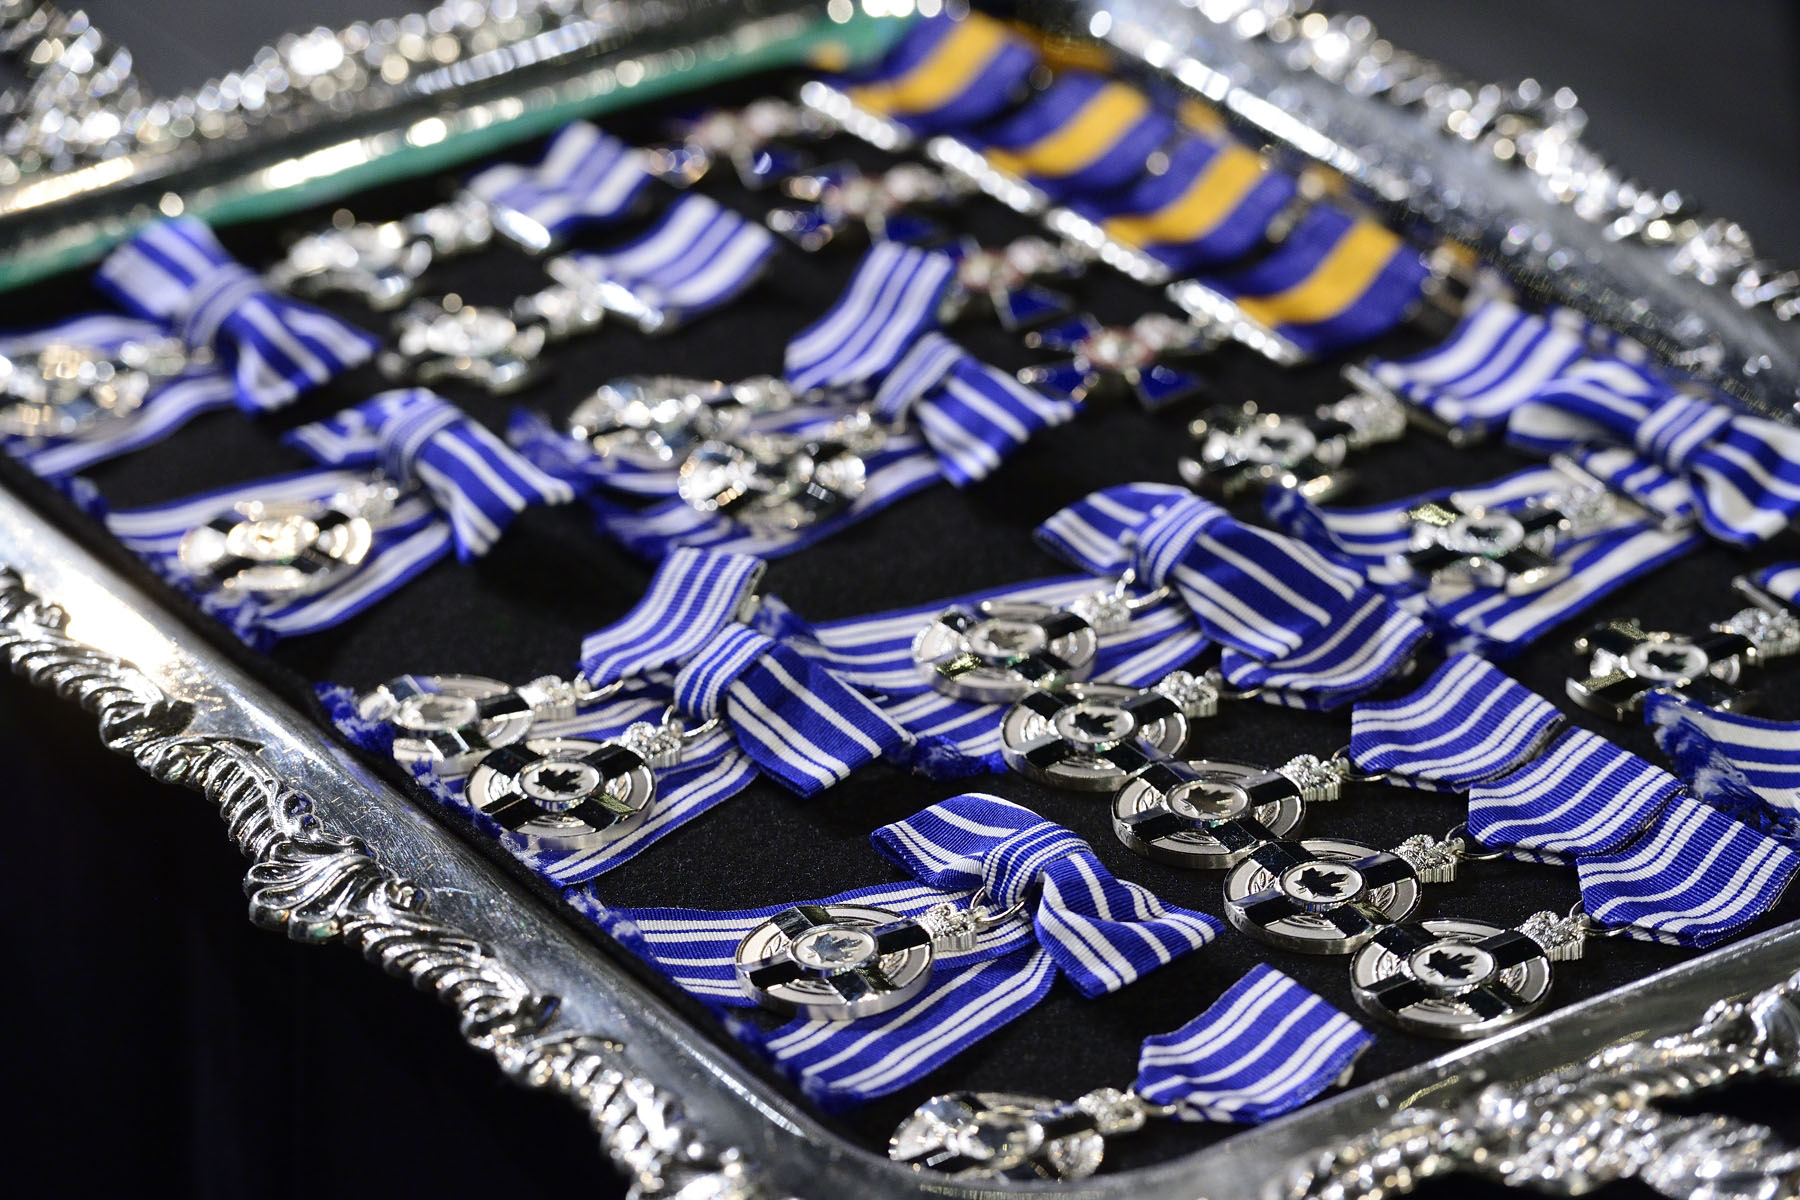 More than 70 remarkable Canadians were recognized for their excellence, courage or exceptional dedication to service with one of the following honours: the Order of Merit of the Police Forces, the Meritorious Service Decoration, the Decoration for Bravery, the Polar Medal or the Sovereign's Medal for Volunteers.